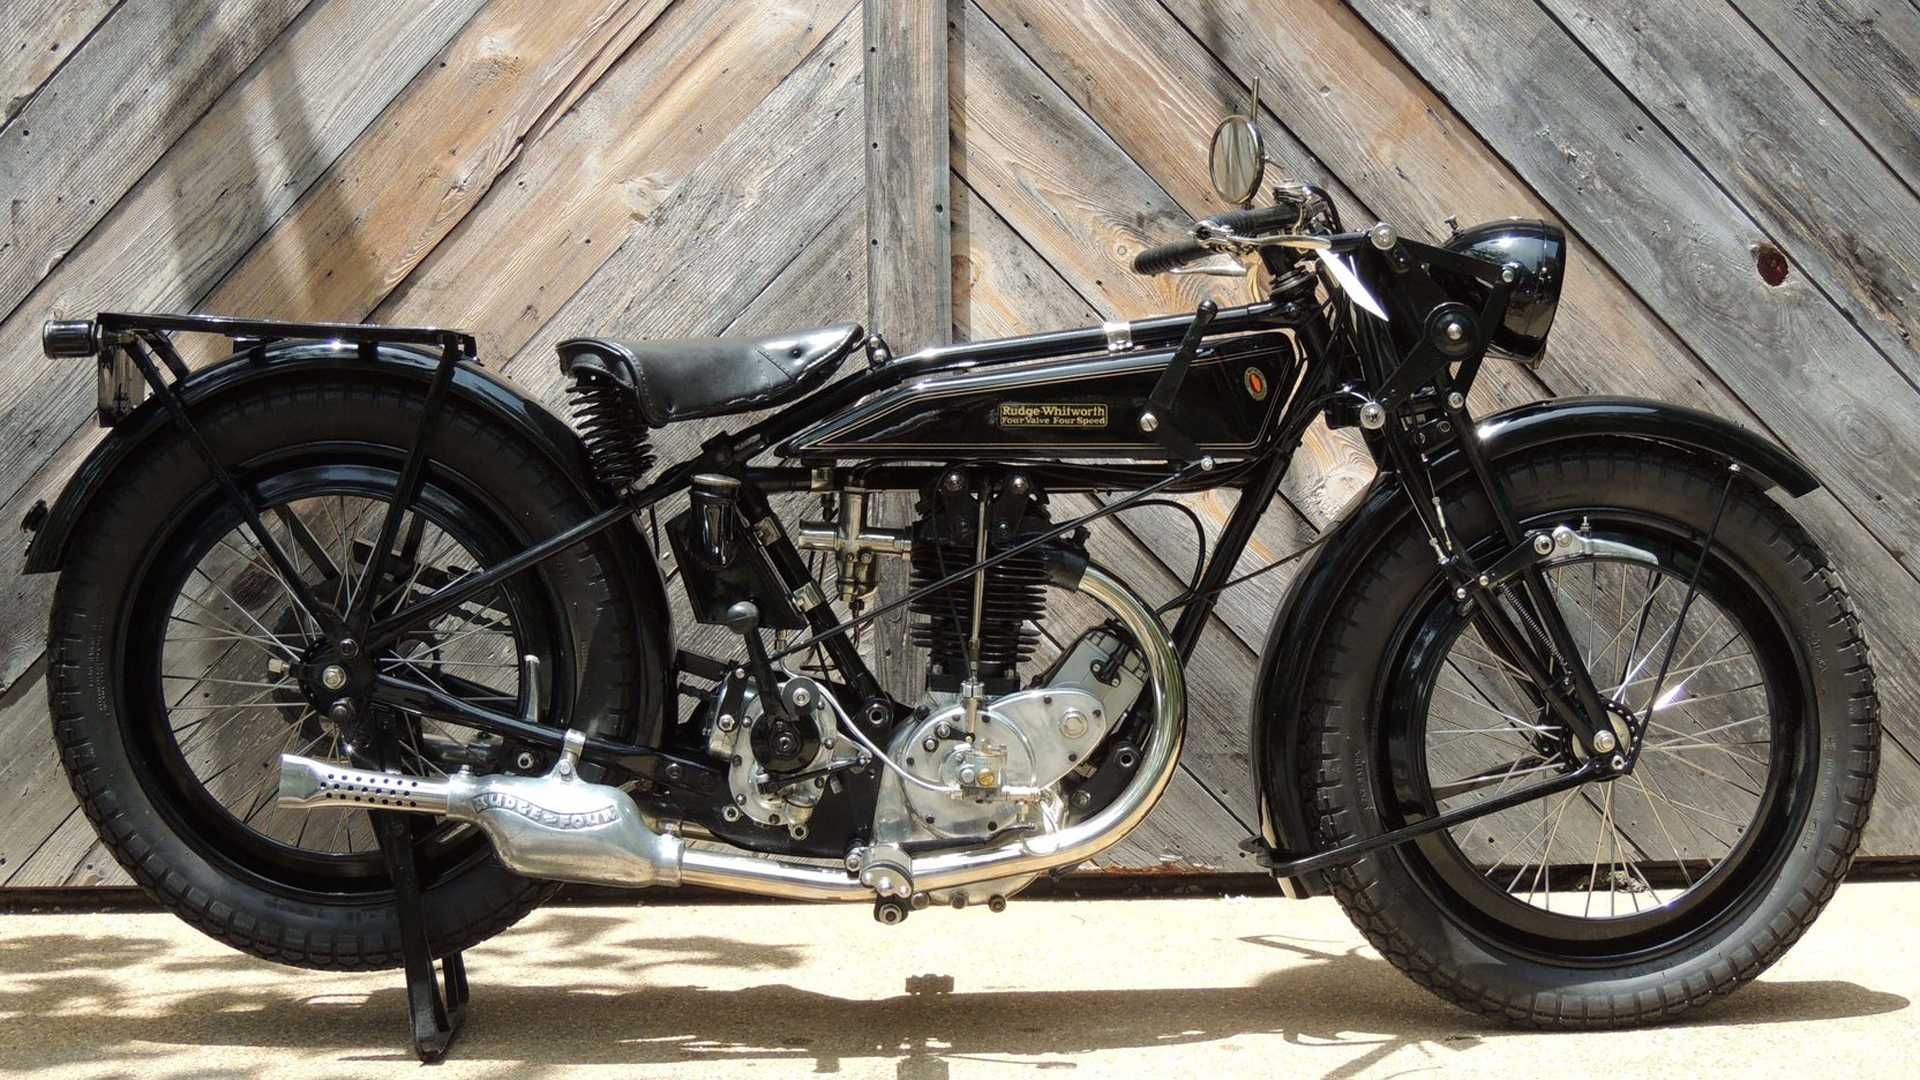 Watch This Fascinating 1920s Film About Motorcycle Manufacturing